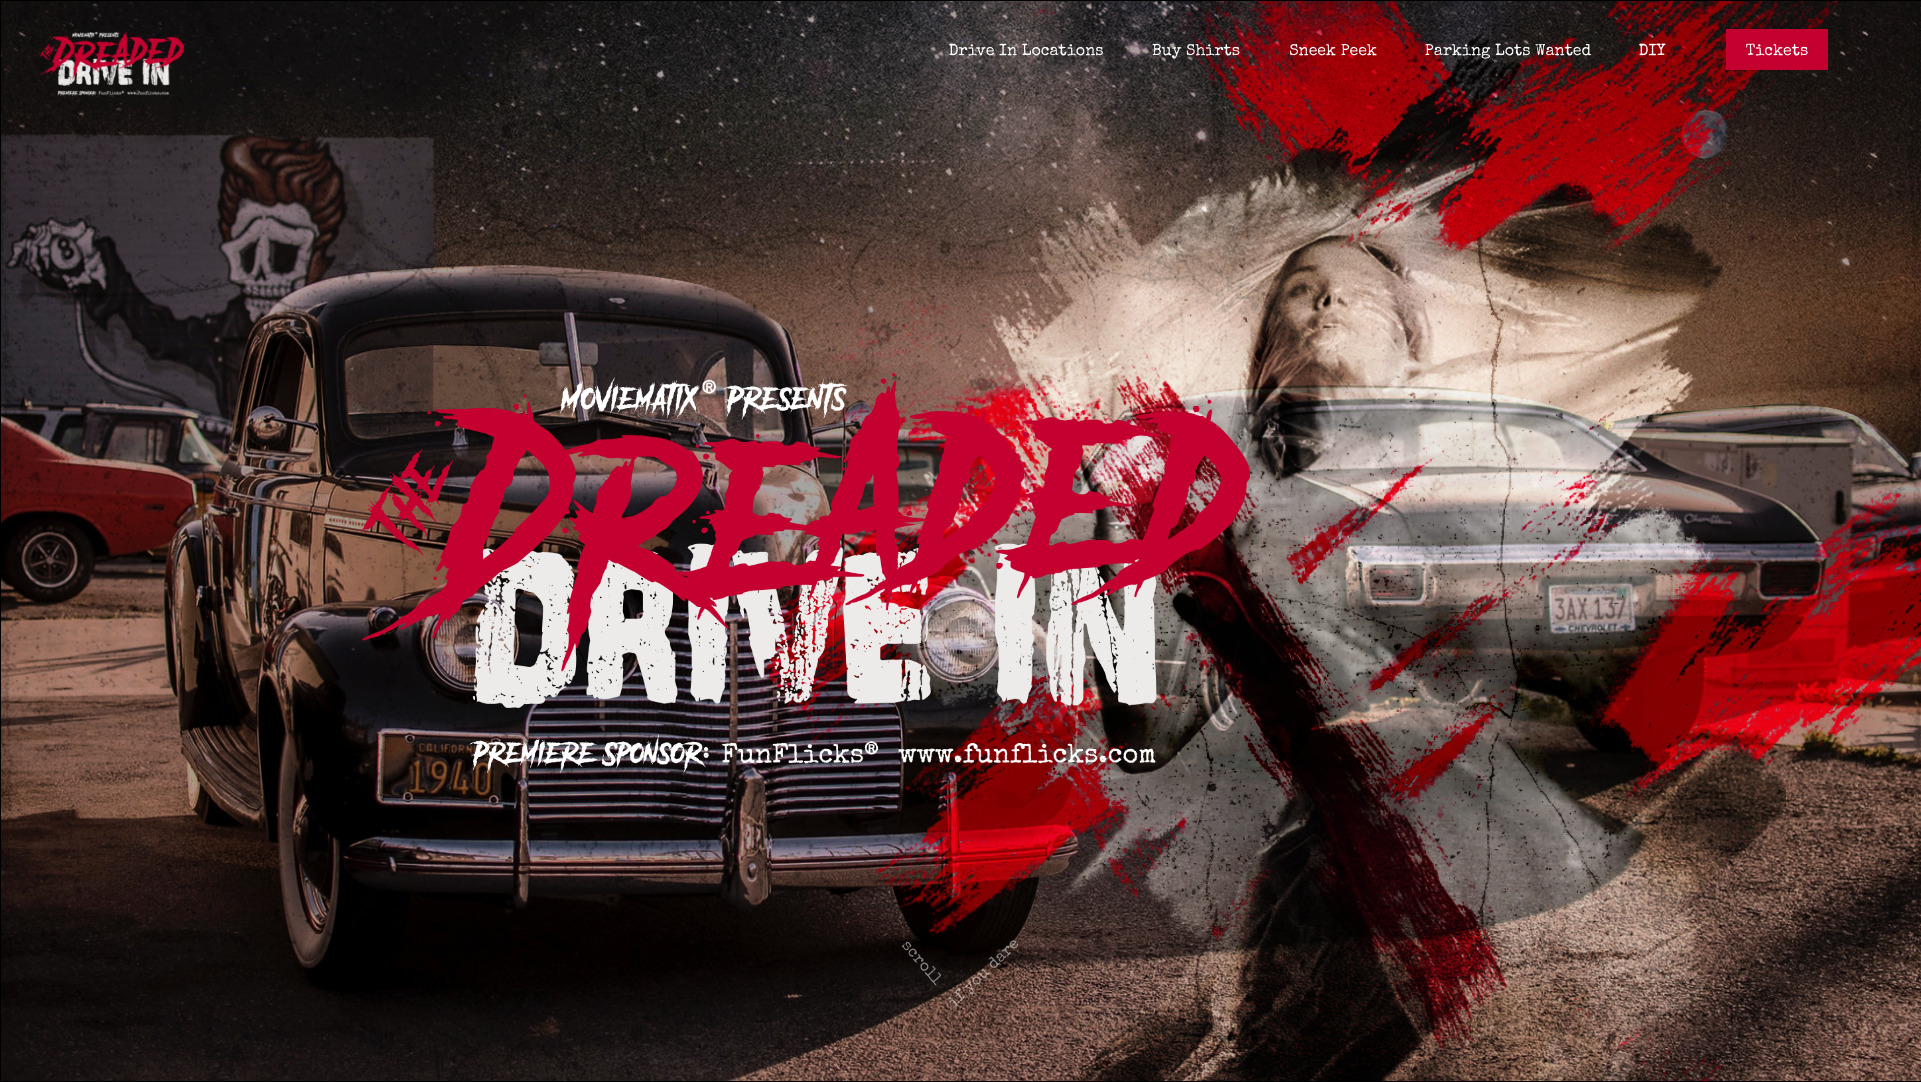 Halloween themed event by the Dreaded Drive In Movie Series